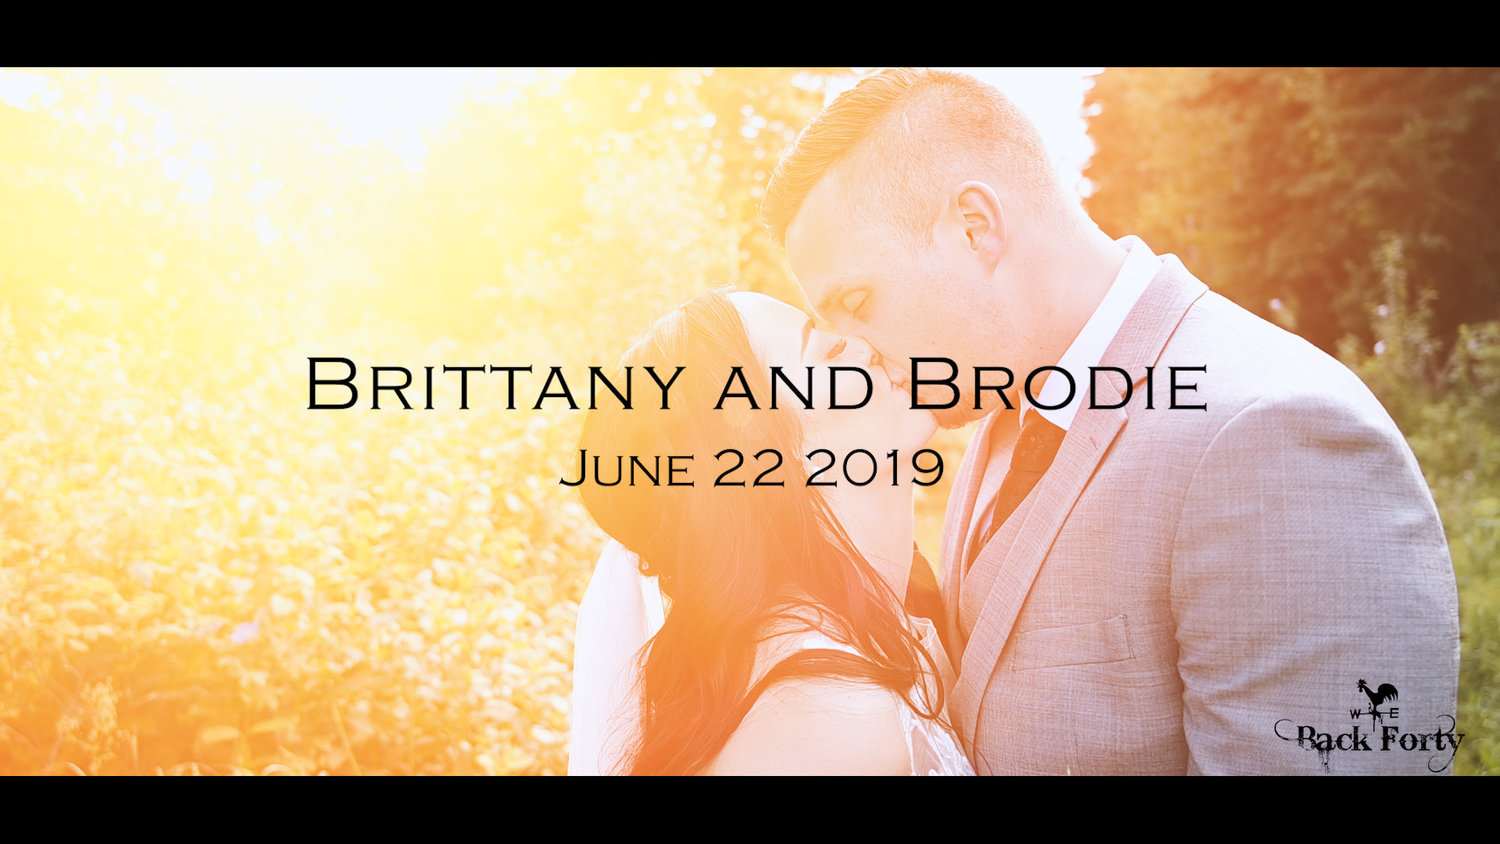 Brittany And Brodie Amazing Vows Amazing Sweetheart Letters Amazing Couple 0 Back Forty